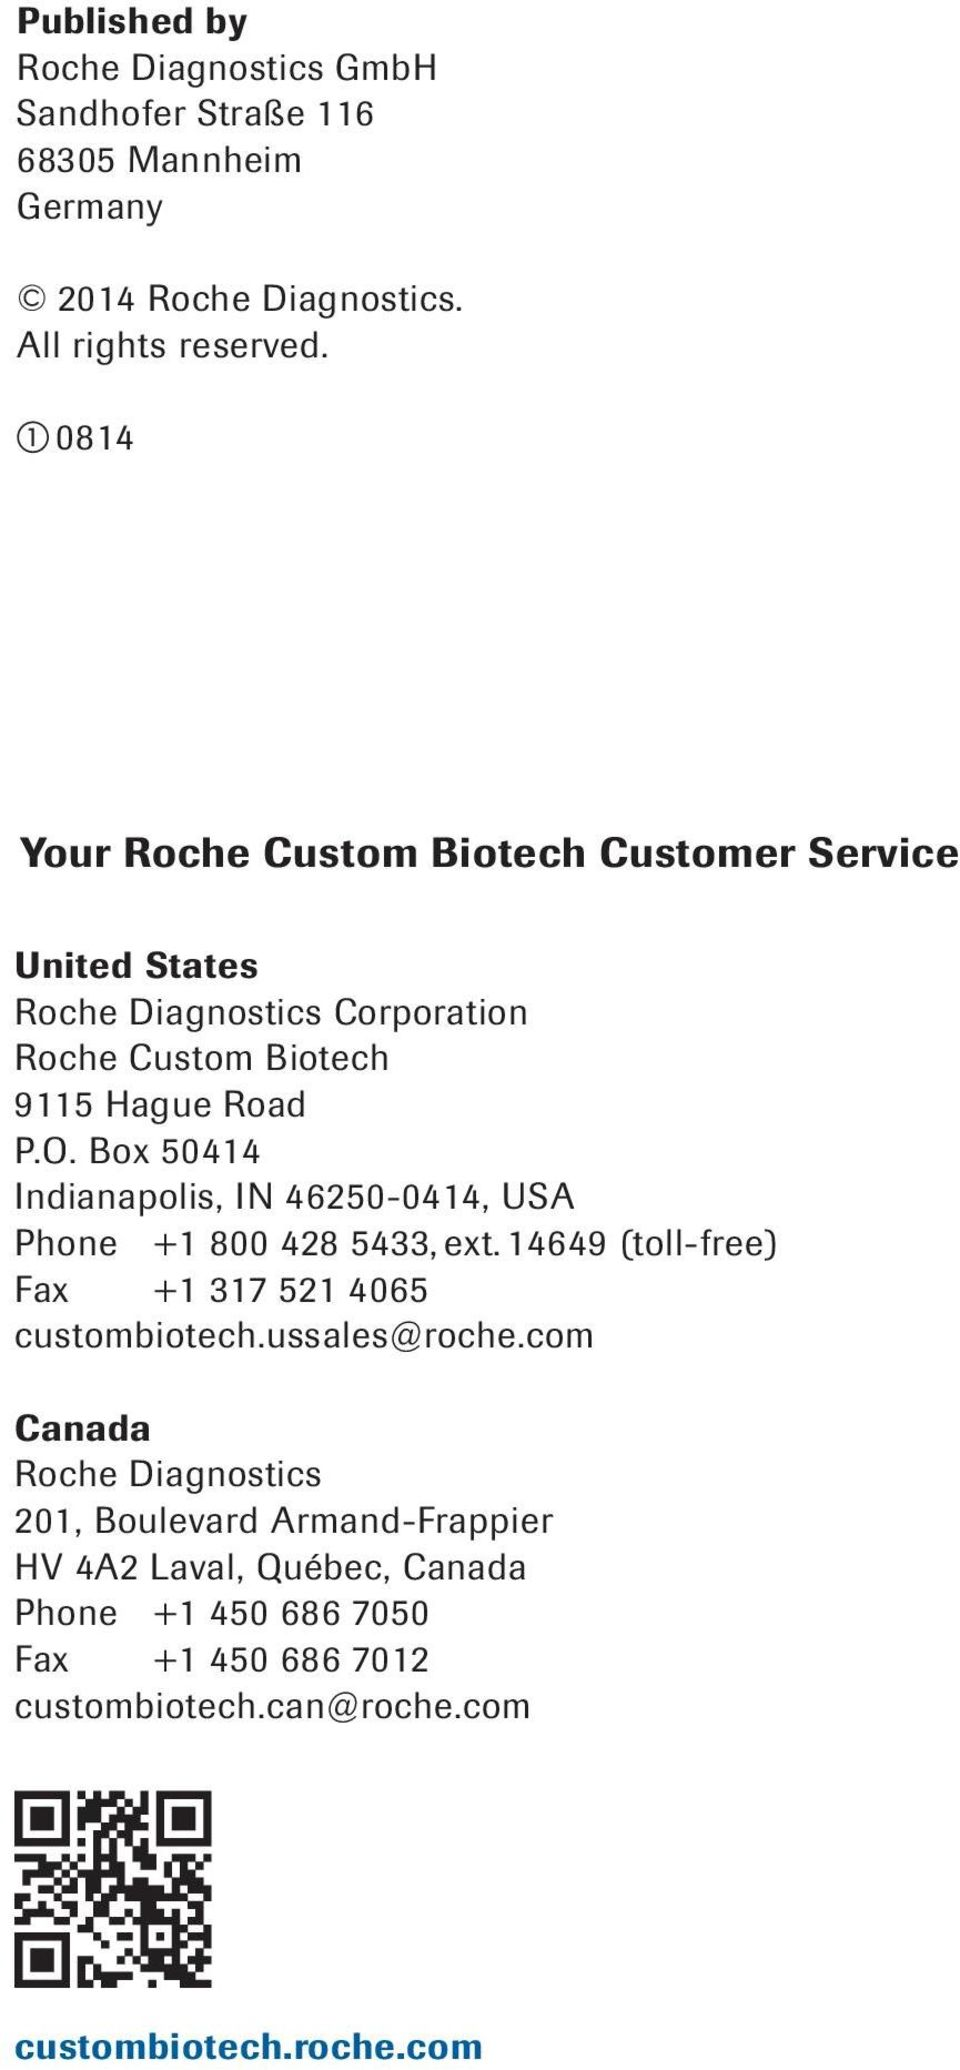 Box 50414 Indianapolis, IN 46250-0414, USA Phone +1 800 428 5433, ext. 14649 (toll-free) Fax +1 317 521 4065 custombiotech.ussales@roche.